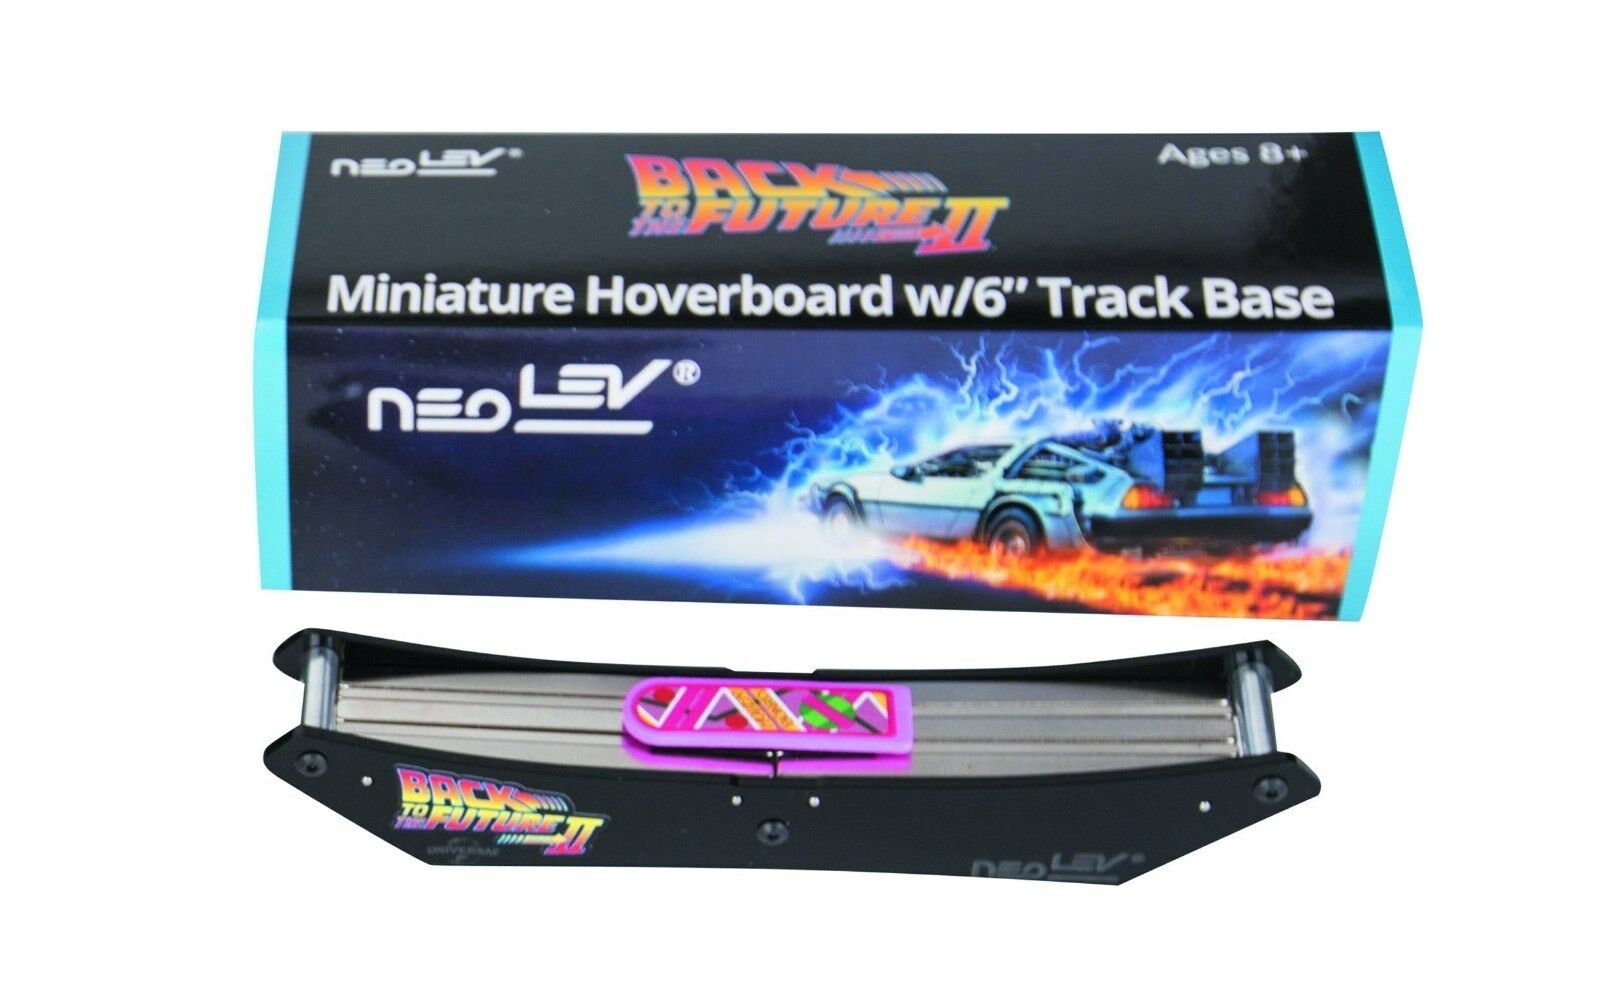 BTTF Miniature Hoverboard Desk Toy with 6 inch Base